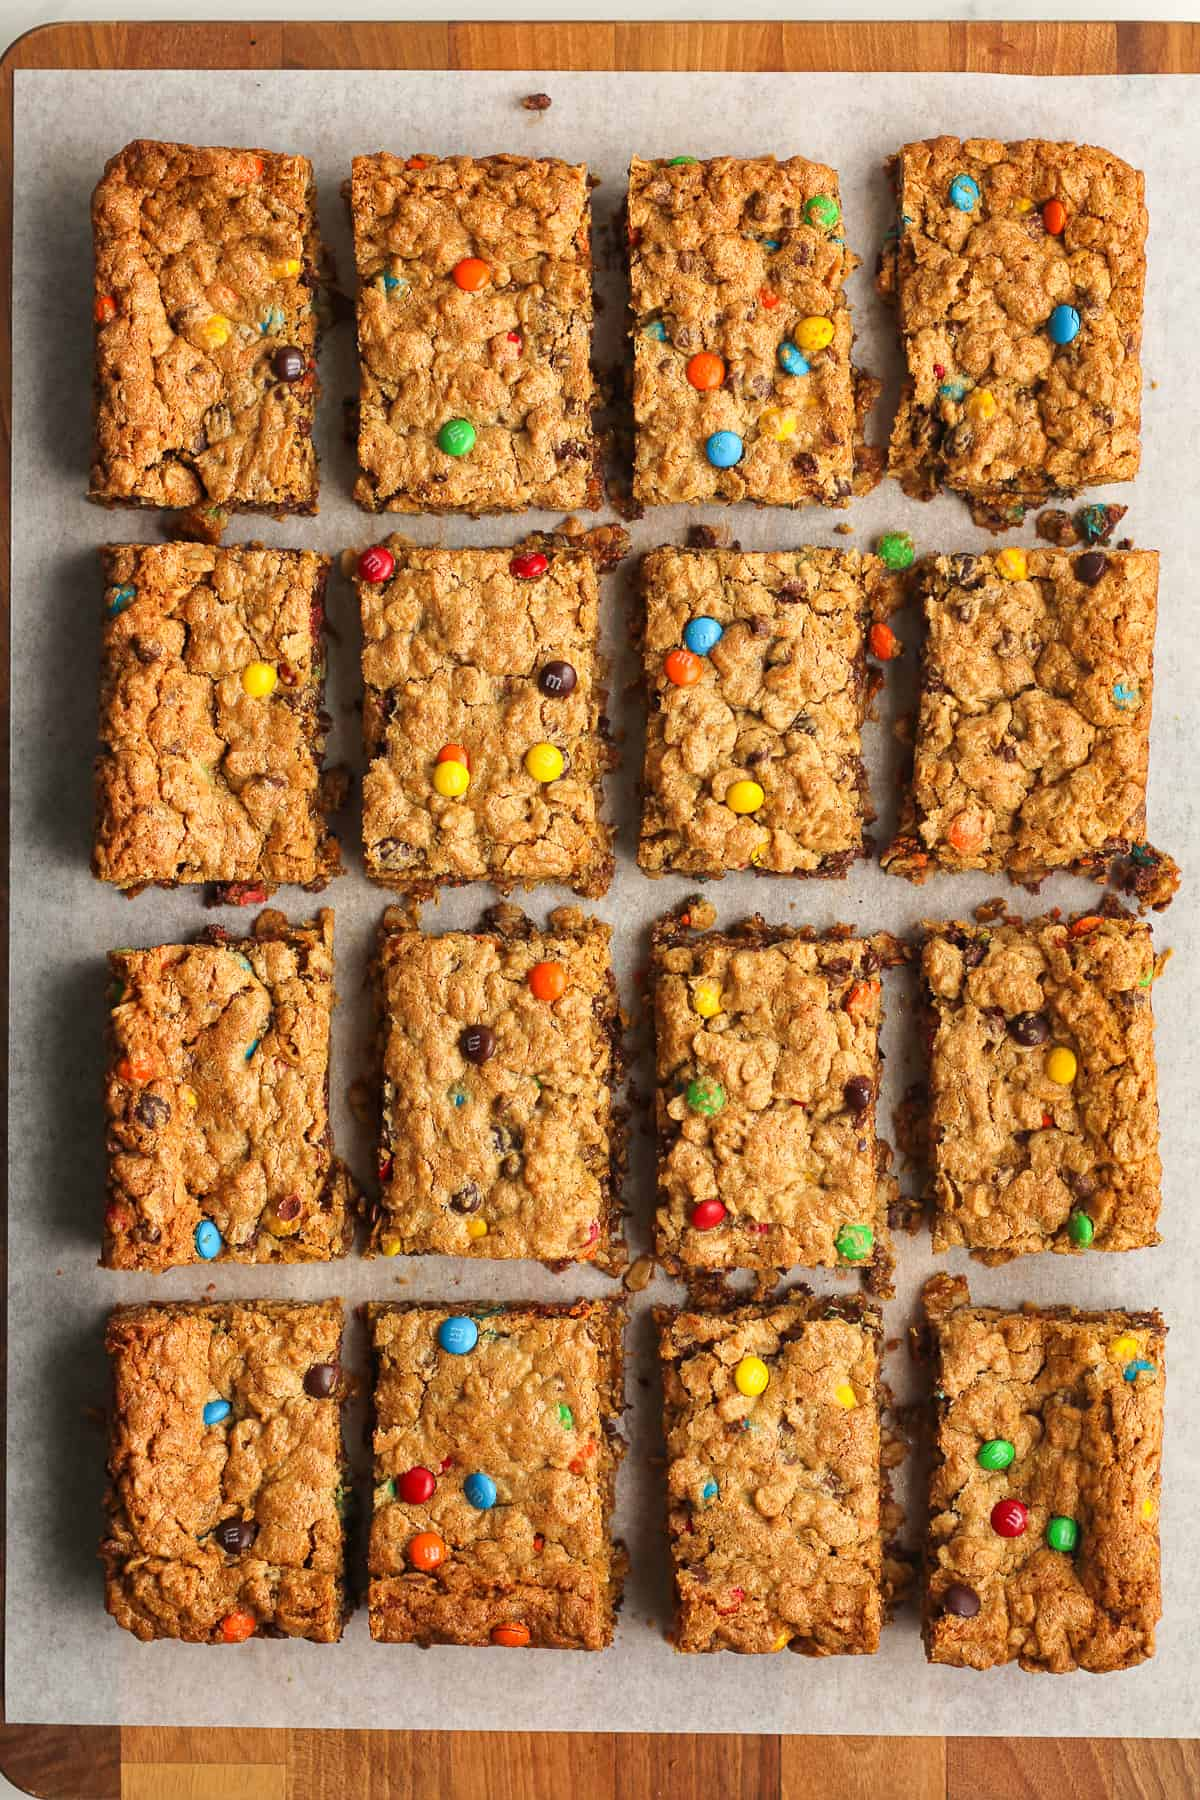 Sliced monster cookie bars on a board.